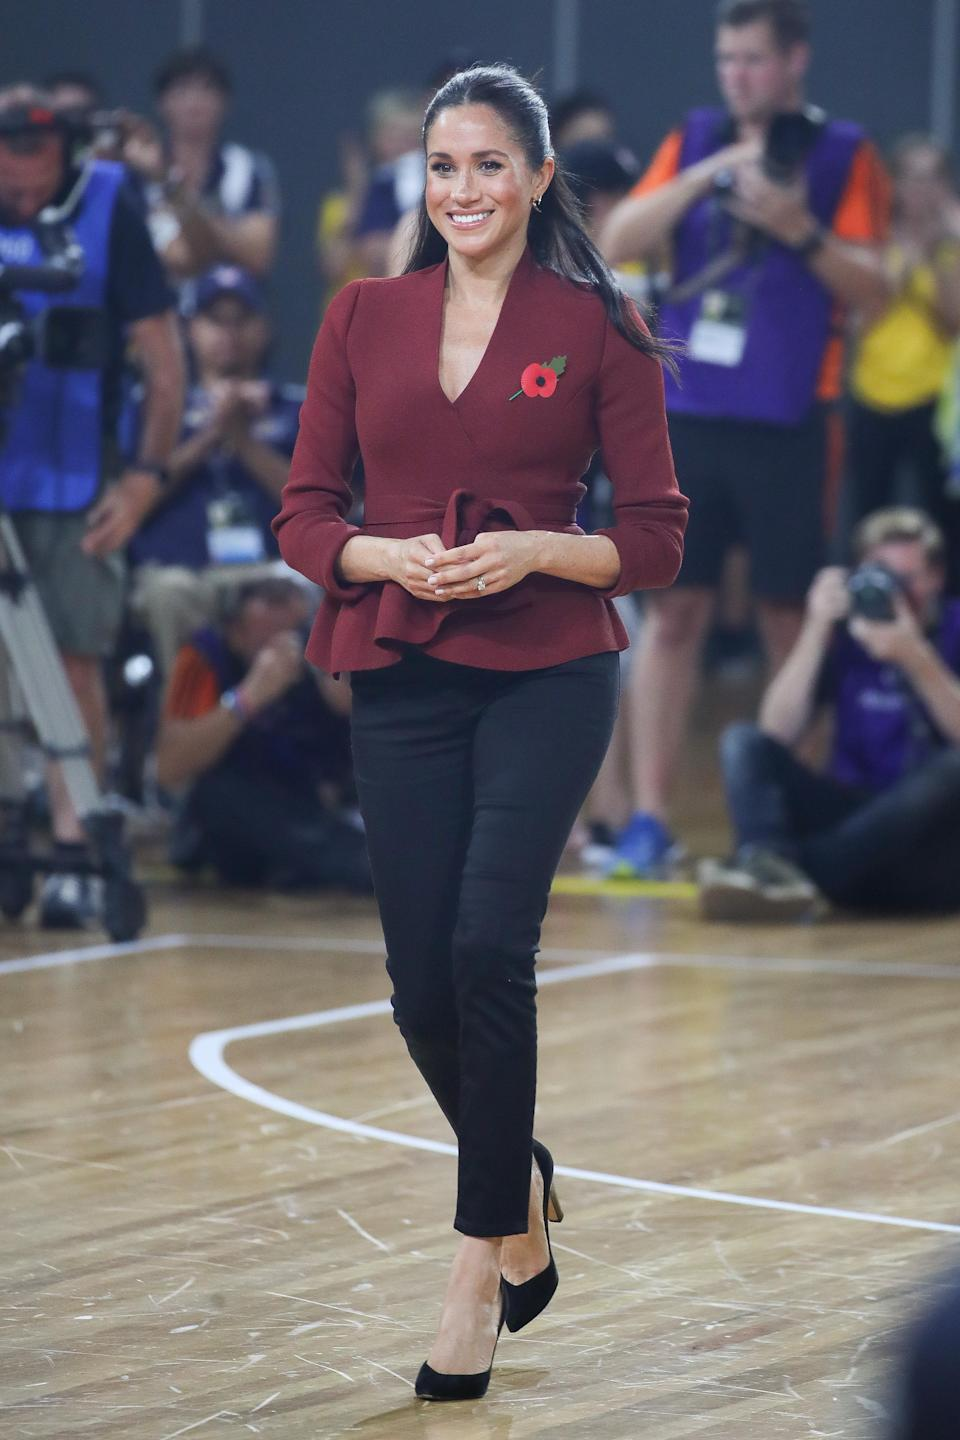 "<p>For the 2018 Invictus Games wheelchair basketball finale, Meghan wore a £303 plum-hued jacket by Aussie label <a href=""https://us.scanlantheodore.com/collections/w18-rwt/products/crepeknitwrapjacketgarnet"" rel=""nofollow noopener"" target=""_blank"" data-ylk=""slk:Scanlan Theodore"" class=""link rapid-noclick-resp"">Scanlan Theodore</a> with skinny jeans. <em>[Photo: Getty]</em> </p>"